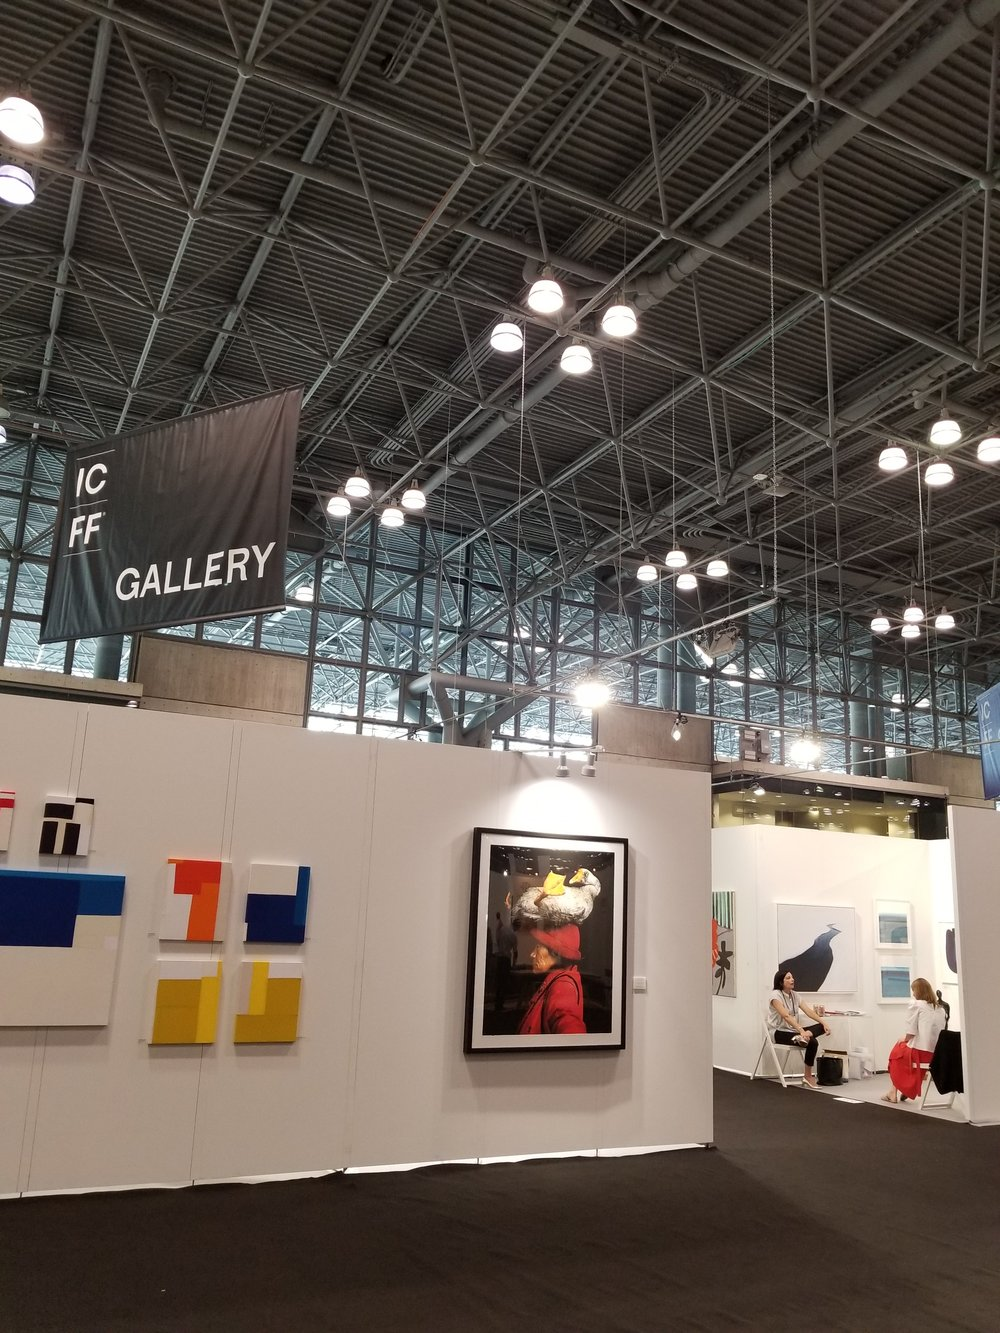 ICFF Gallery